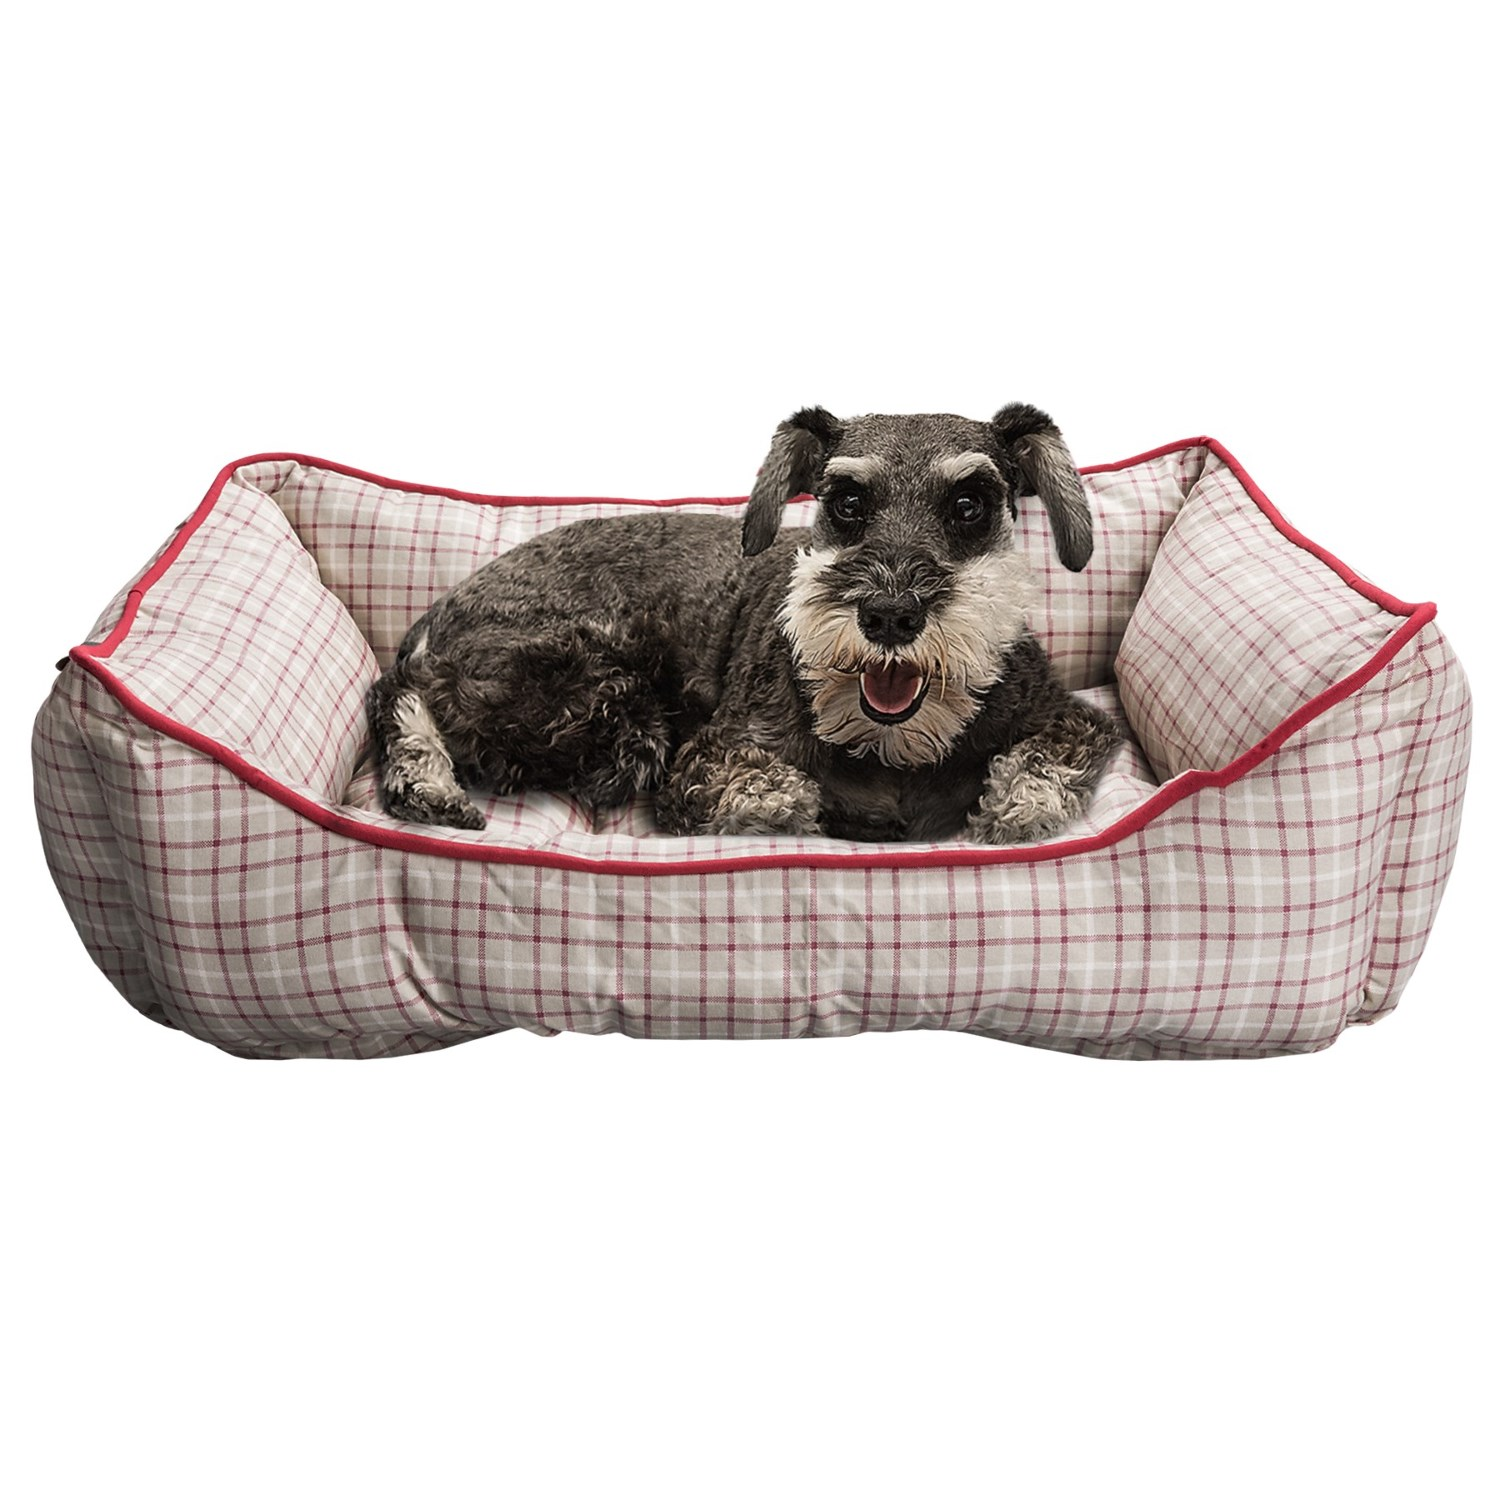 Plaid Dog Bed Telluride Plaid Lounger Dog Bed 28x22 Save 30